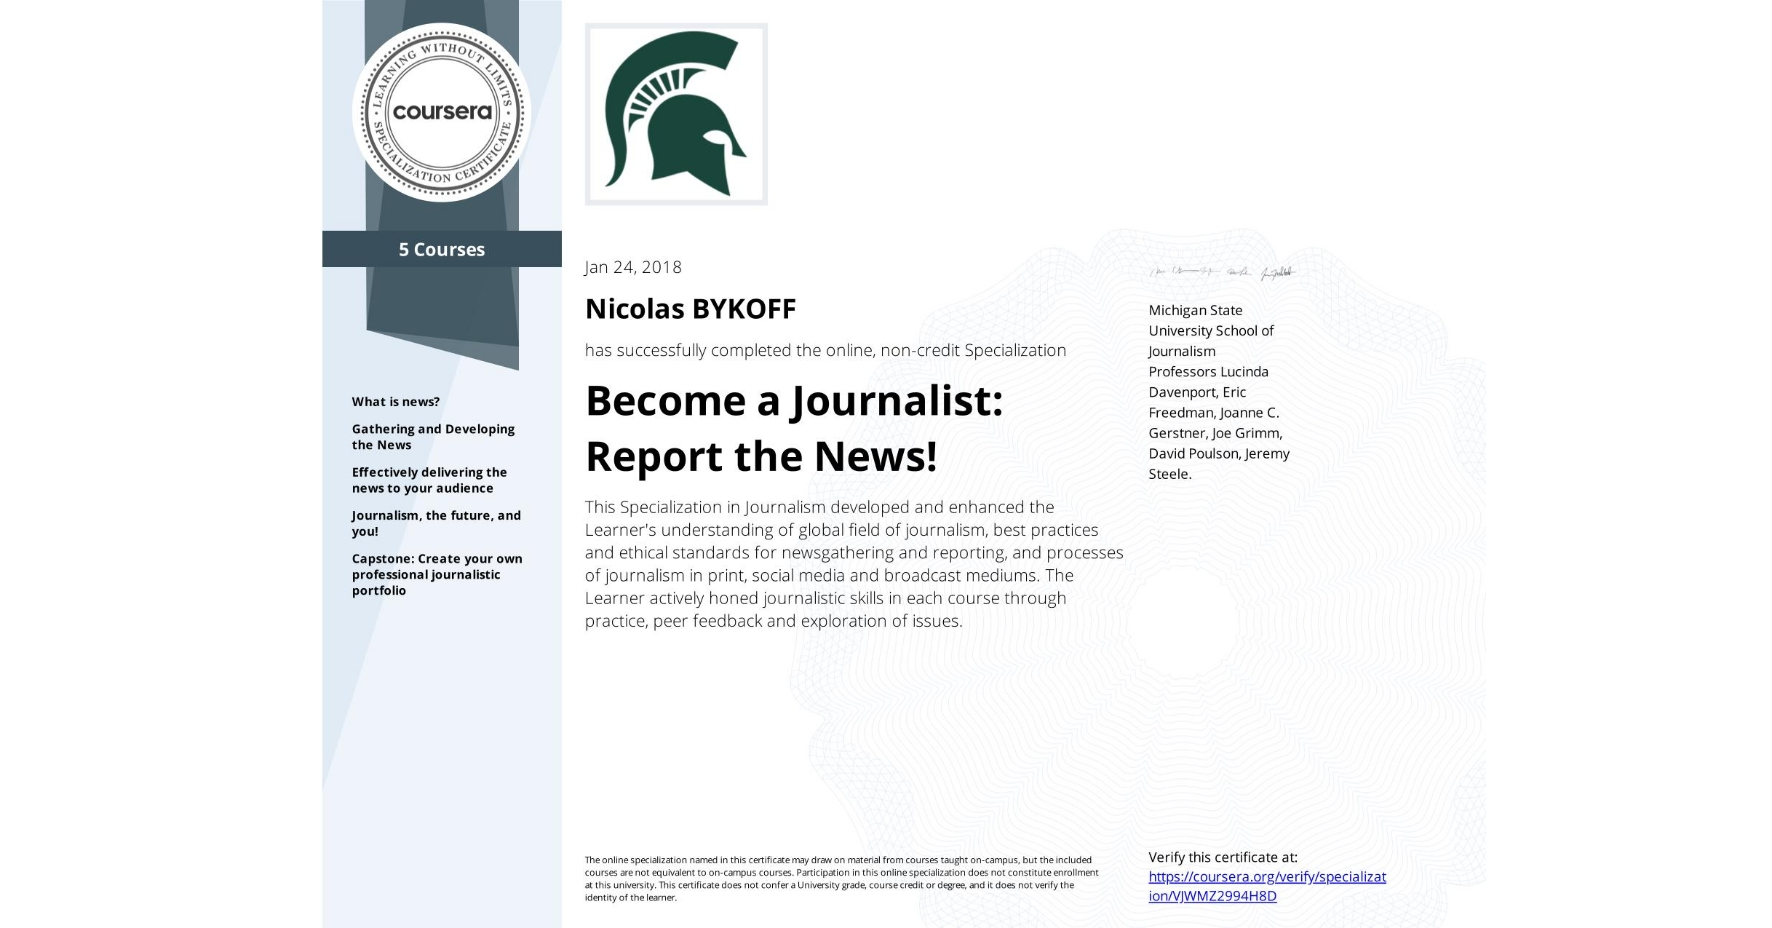 View certificate for Nicolas BYKOFF, Become a Journalist: Report the News!, offered through Coursera. This Specialization in Journalism developed and enhanced the Learner's understanding of global field of journalism, best practices and ethical standards for newsgathering and reporting, and processes of journalism in print, social media and broadcast mediums. The Learner actively honed journalistic skills in each course through practice, peer feedback and exploration of issues.